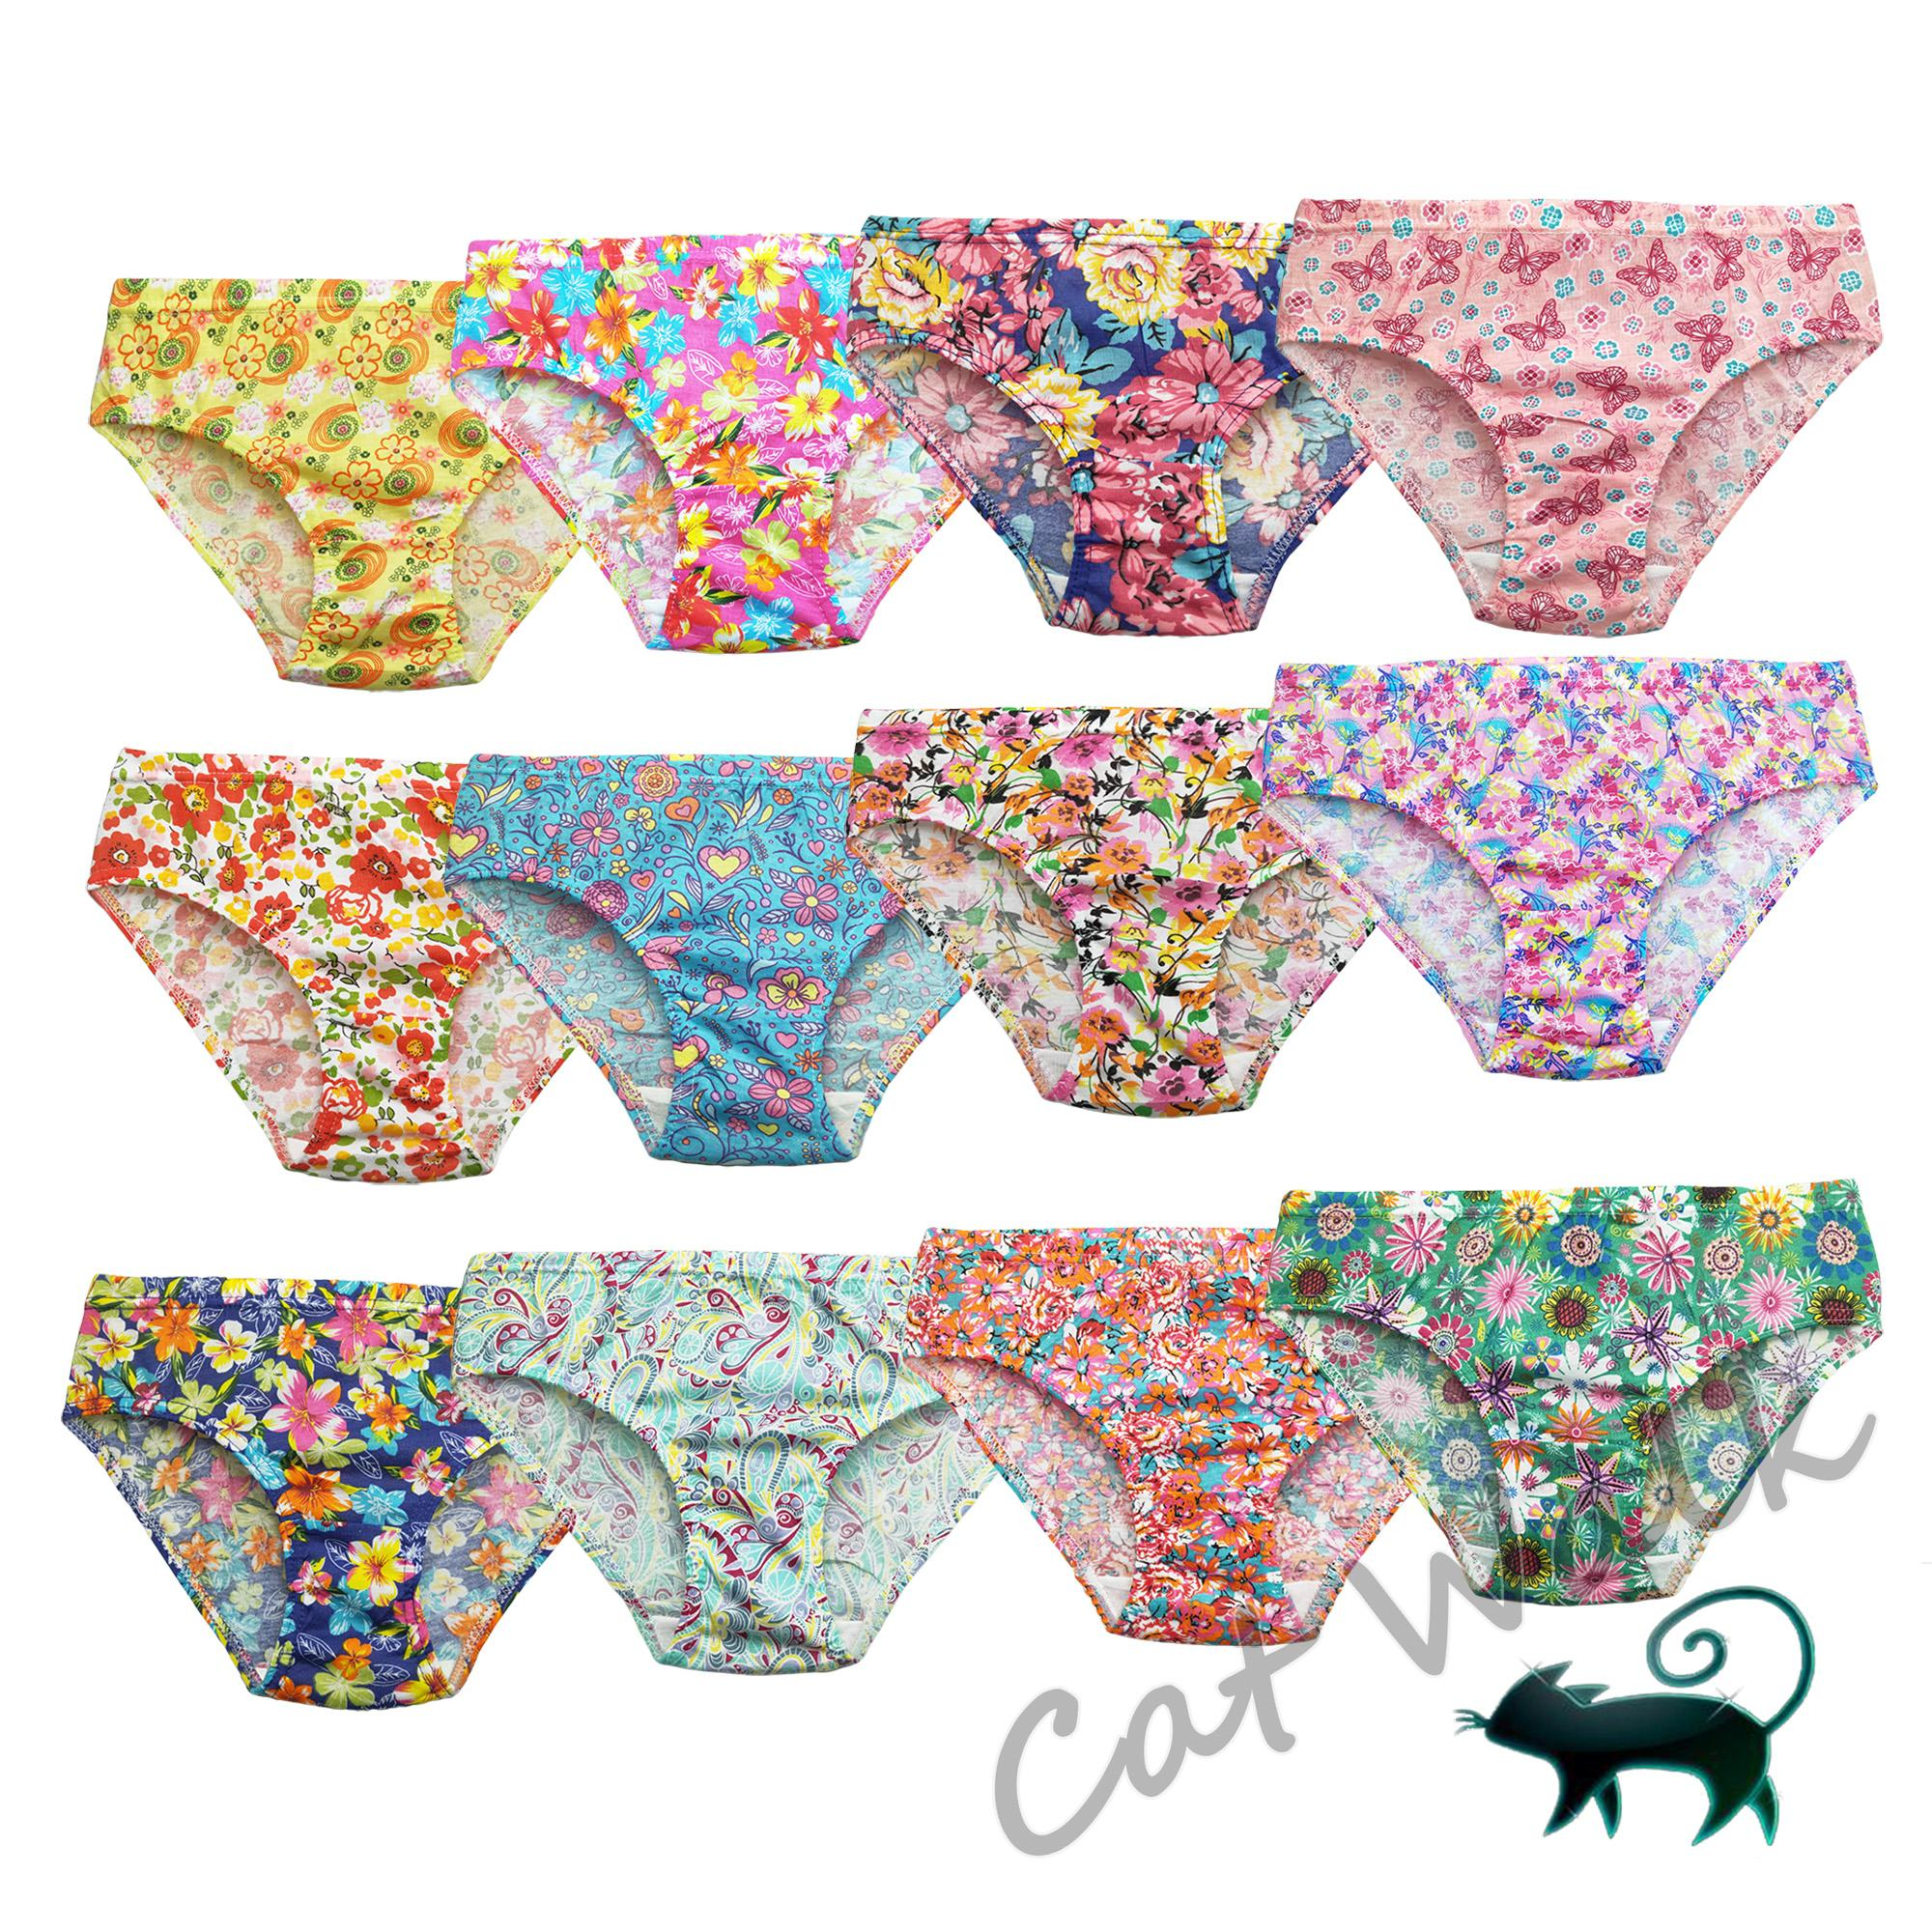 ba700c70e003 Panties for Women for sale - Womens Panties Online Deals & Prices in ...